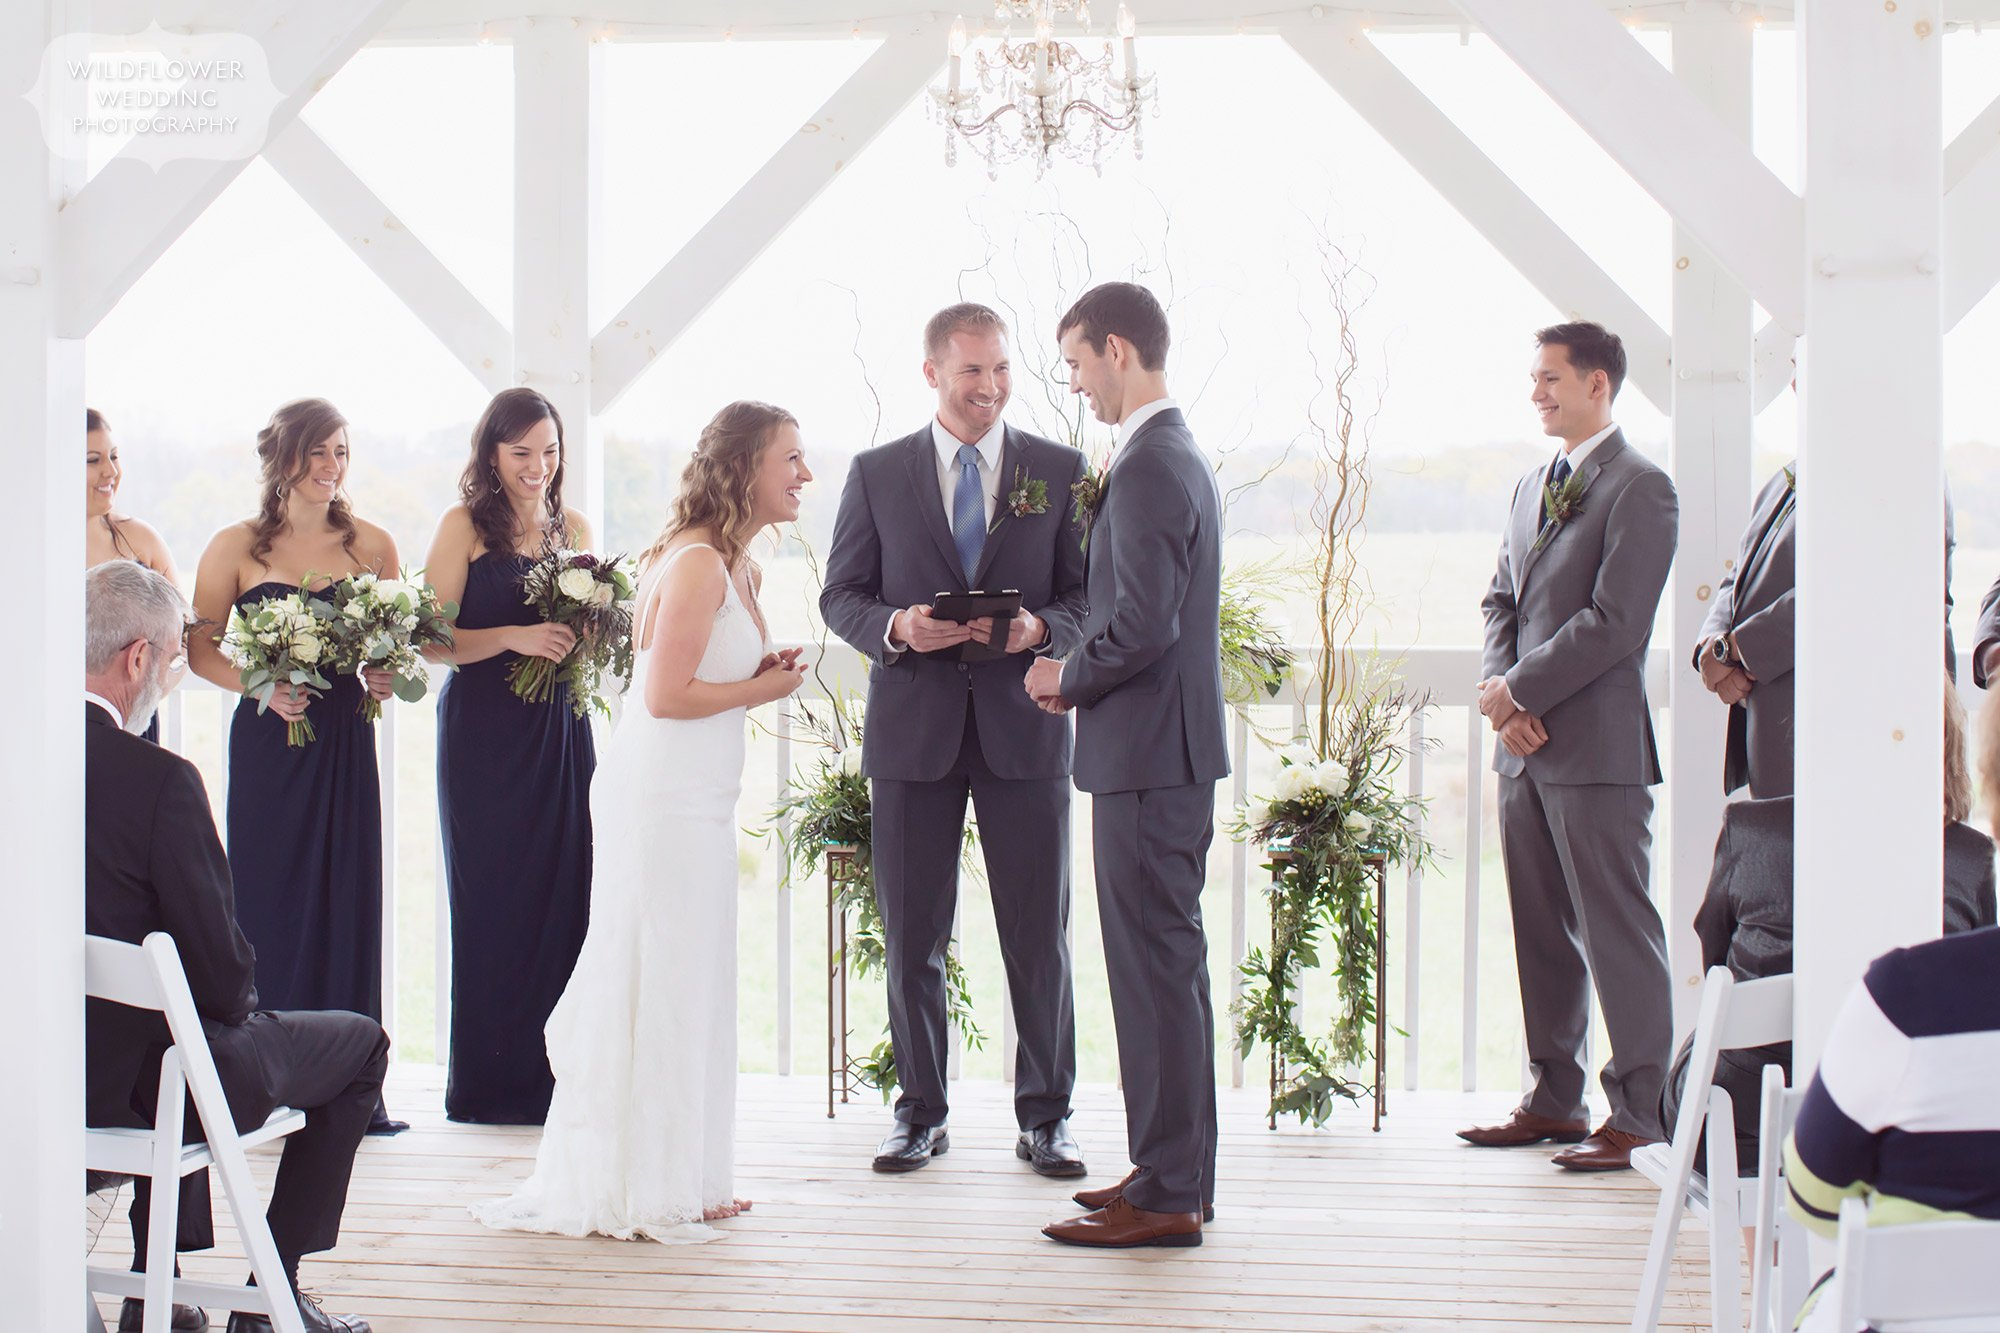 Bride and groom exchange vows on the dreamy scandinavian barn deck at Blue Bell.